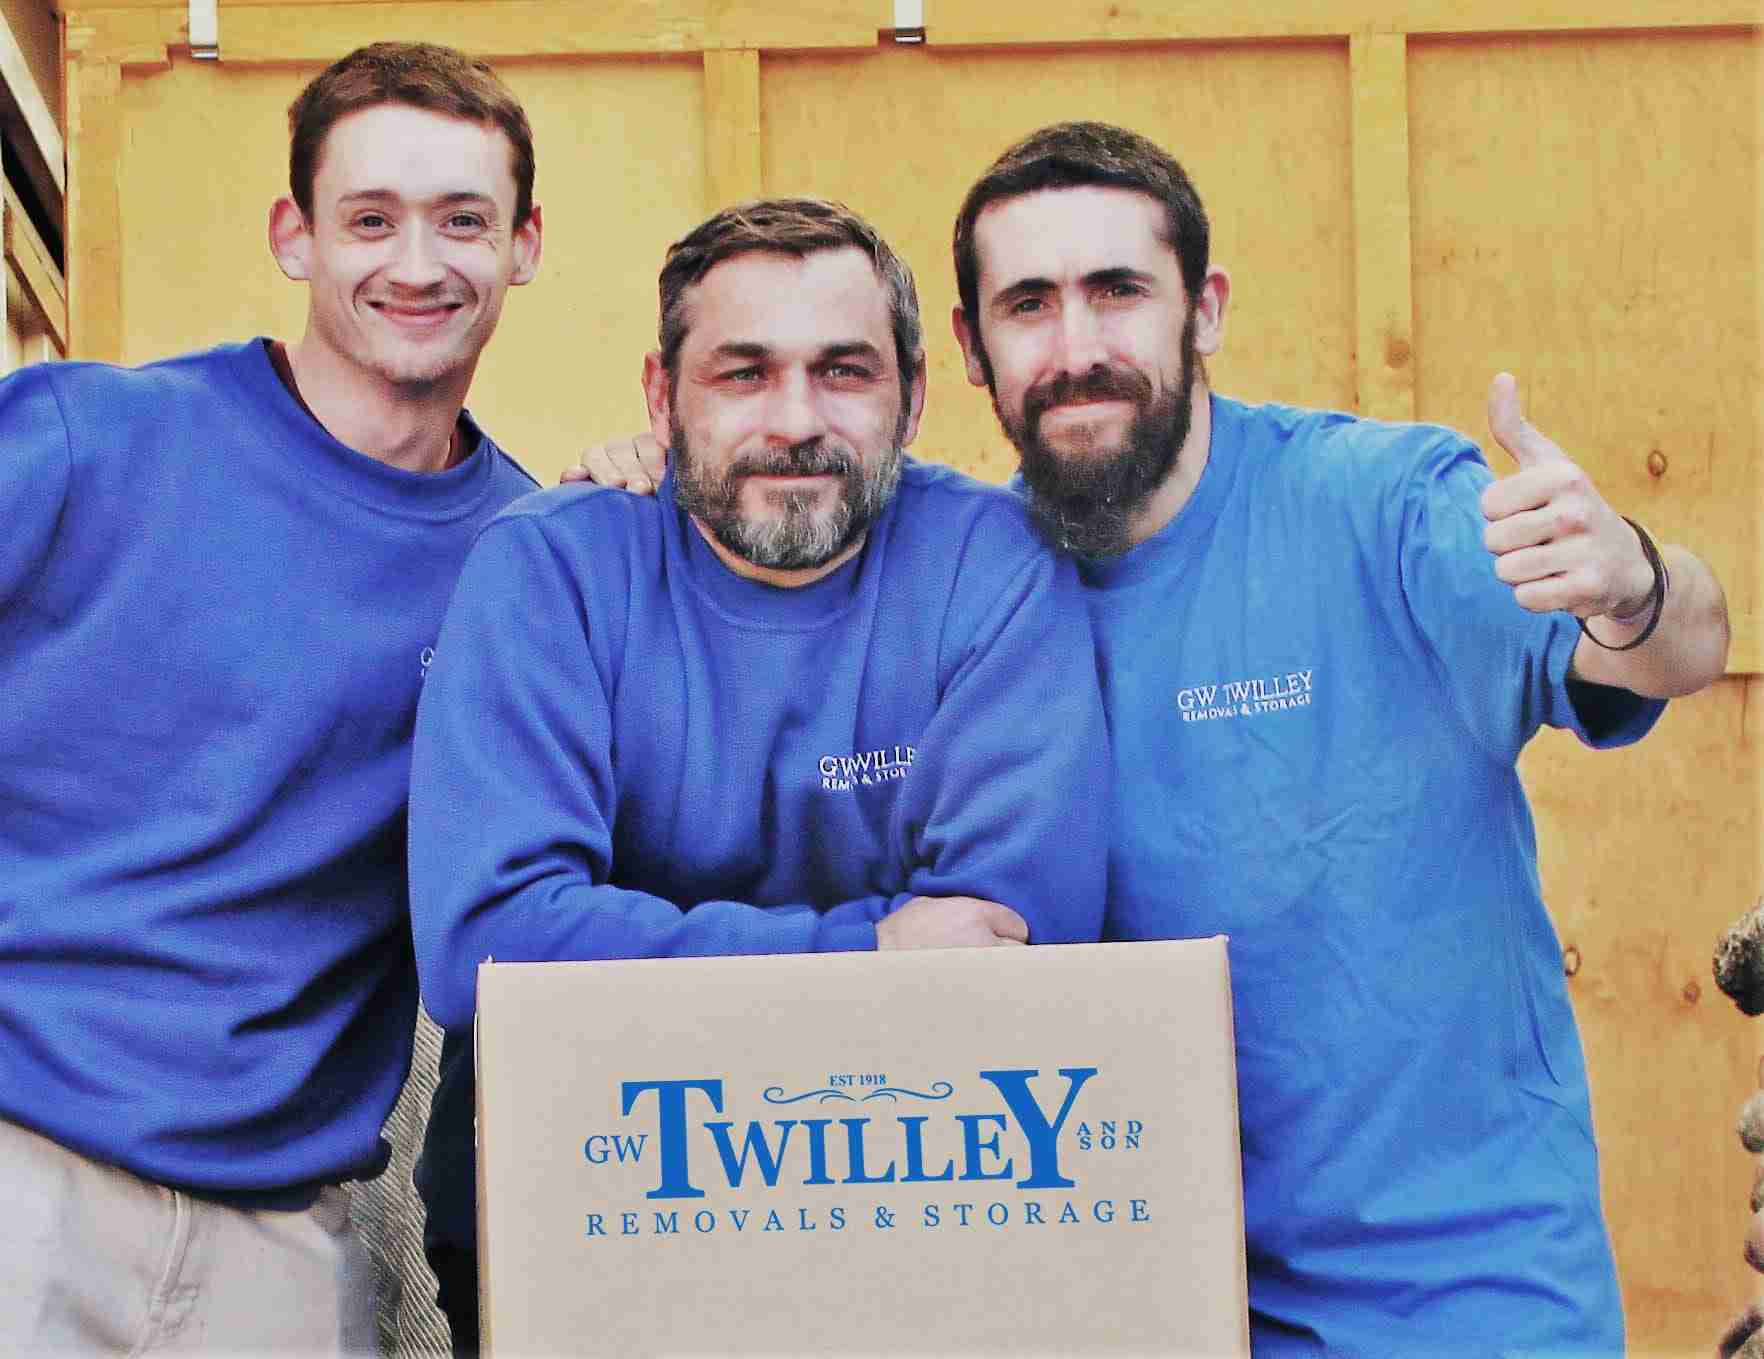 Twilleys removals team